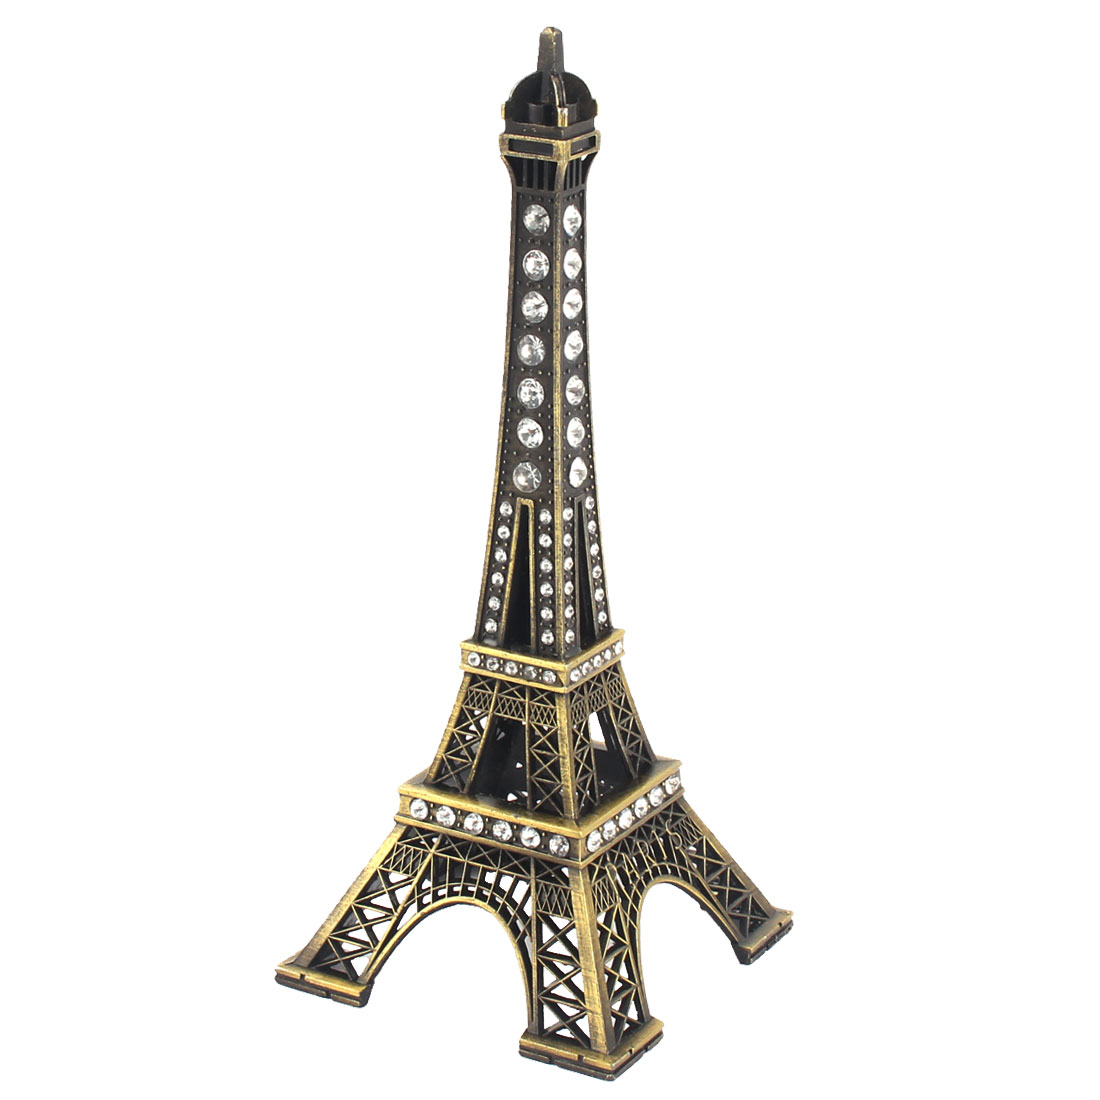 Metal Eiffel Tower Design Rhinestone Detailing Souvenir Ornament Bronze Tone